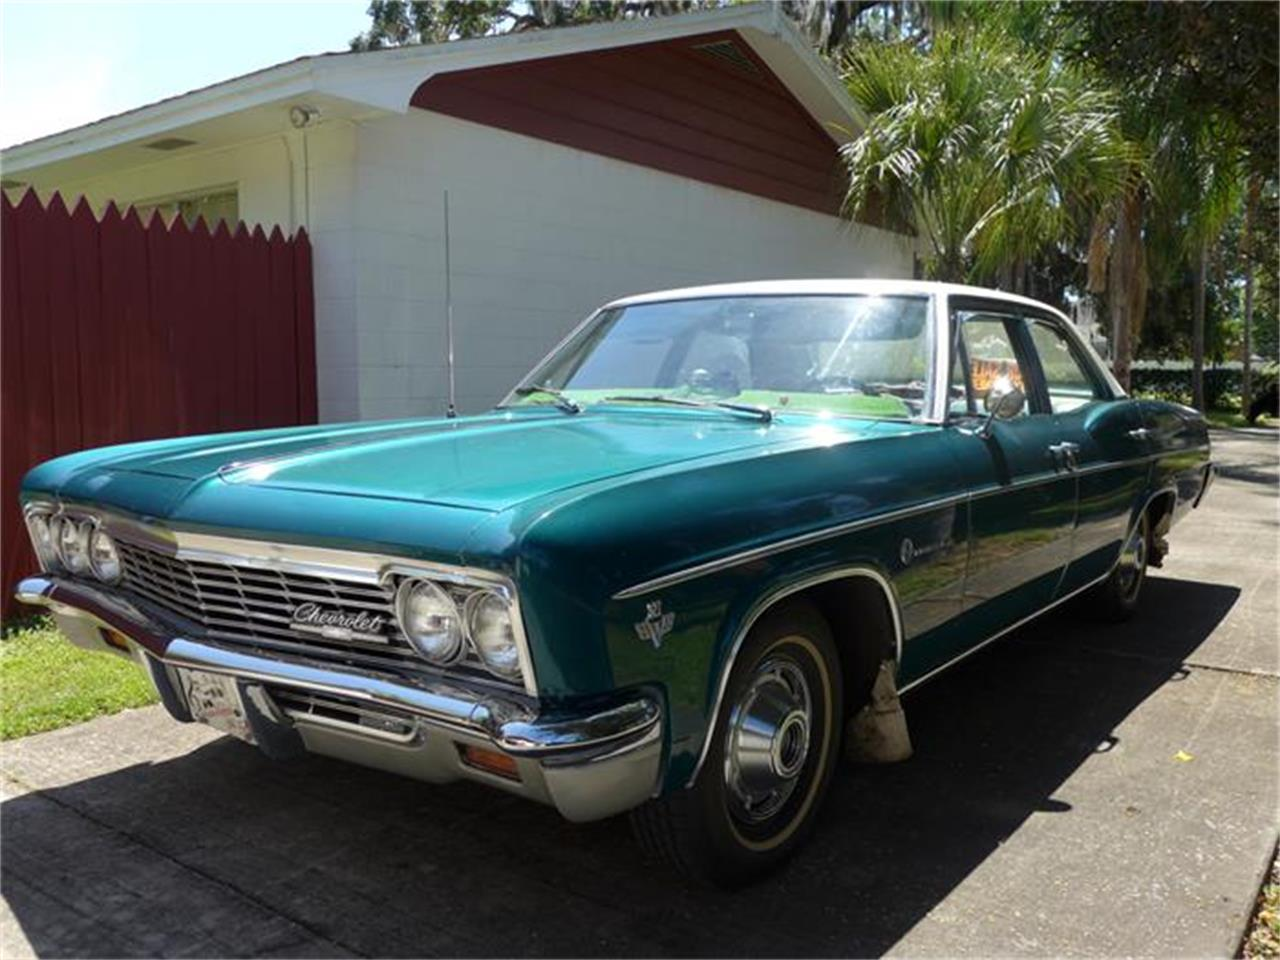 Large Picture of '66 Chevrolet Impala located in Seffner Florida Offered by a Private Seller - B878